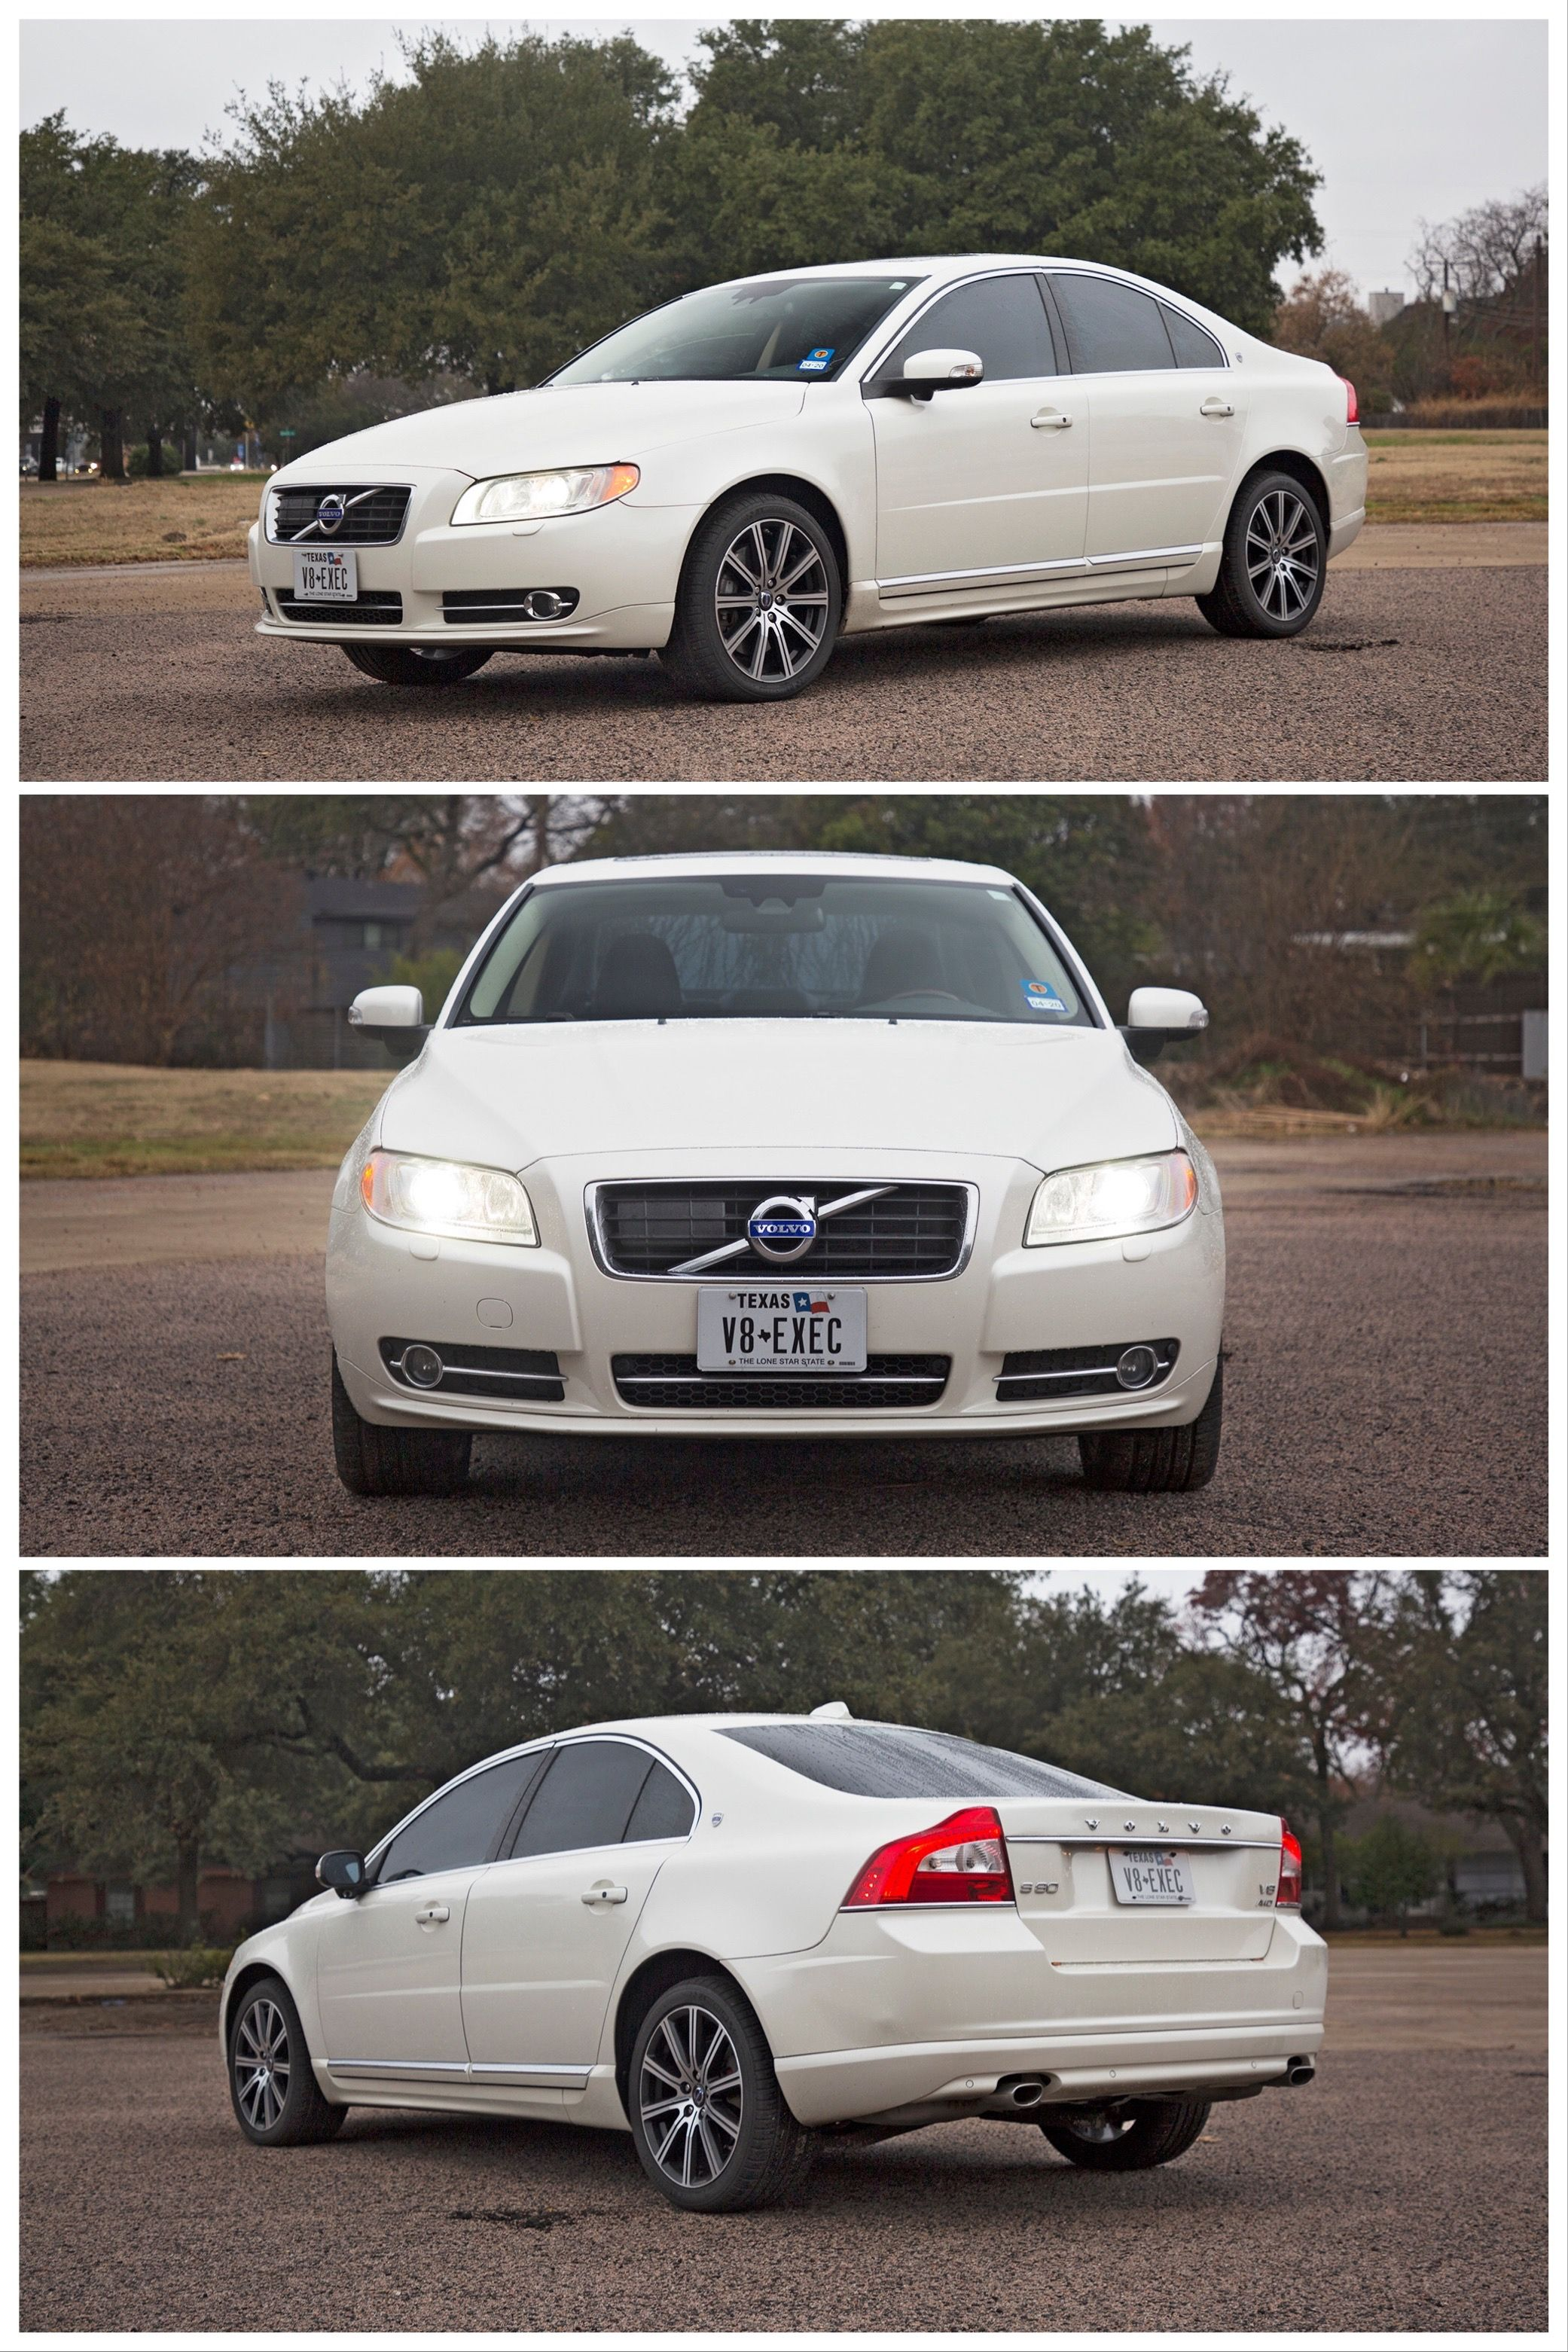 The Volvo S80 V8 Is One Of The Coolest Volvos We Ve Ever Driven In 2020 Volvo S80 Volvo Jaguar Suv